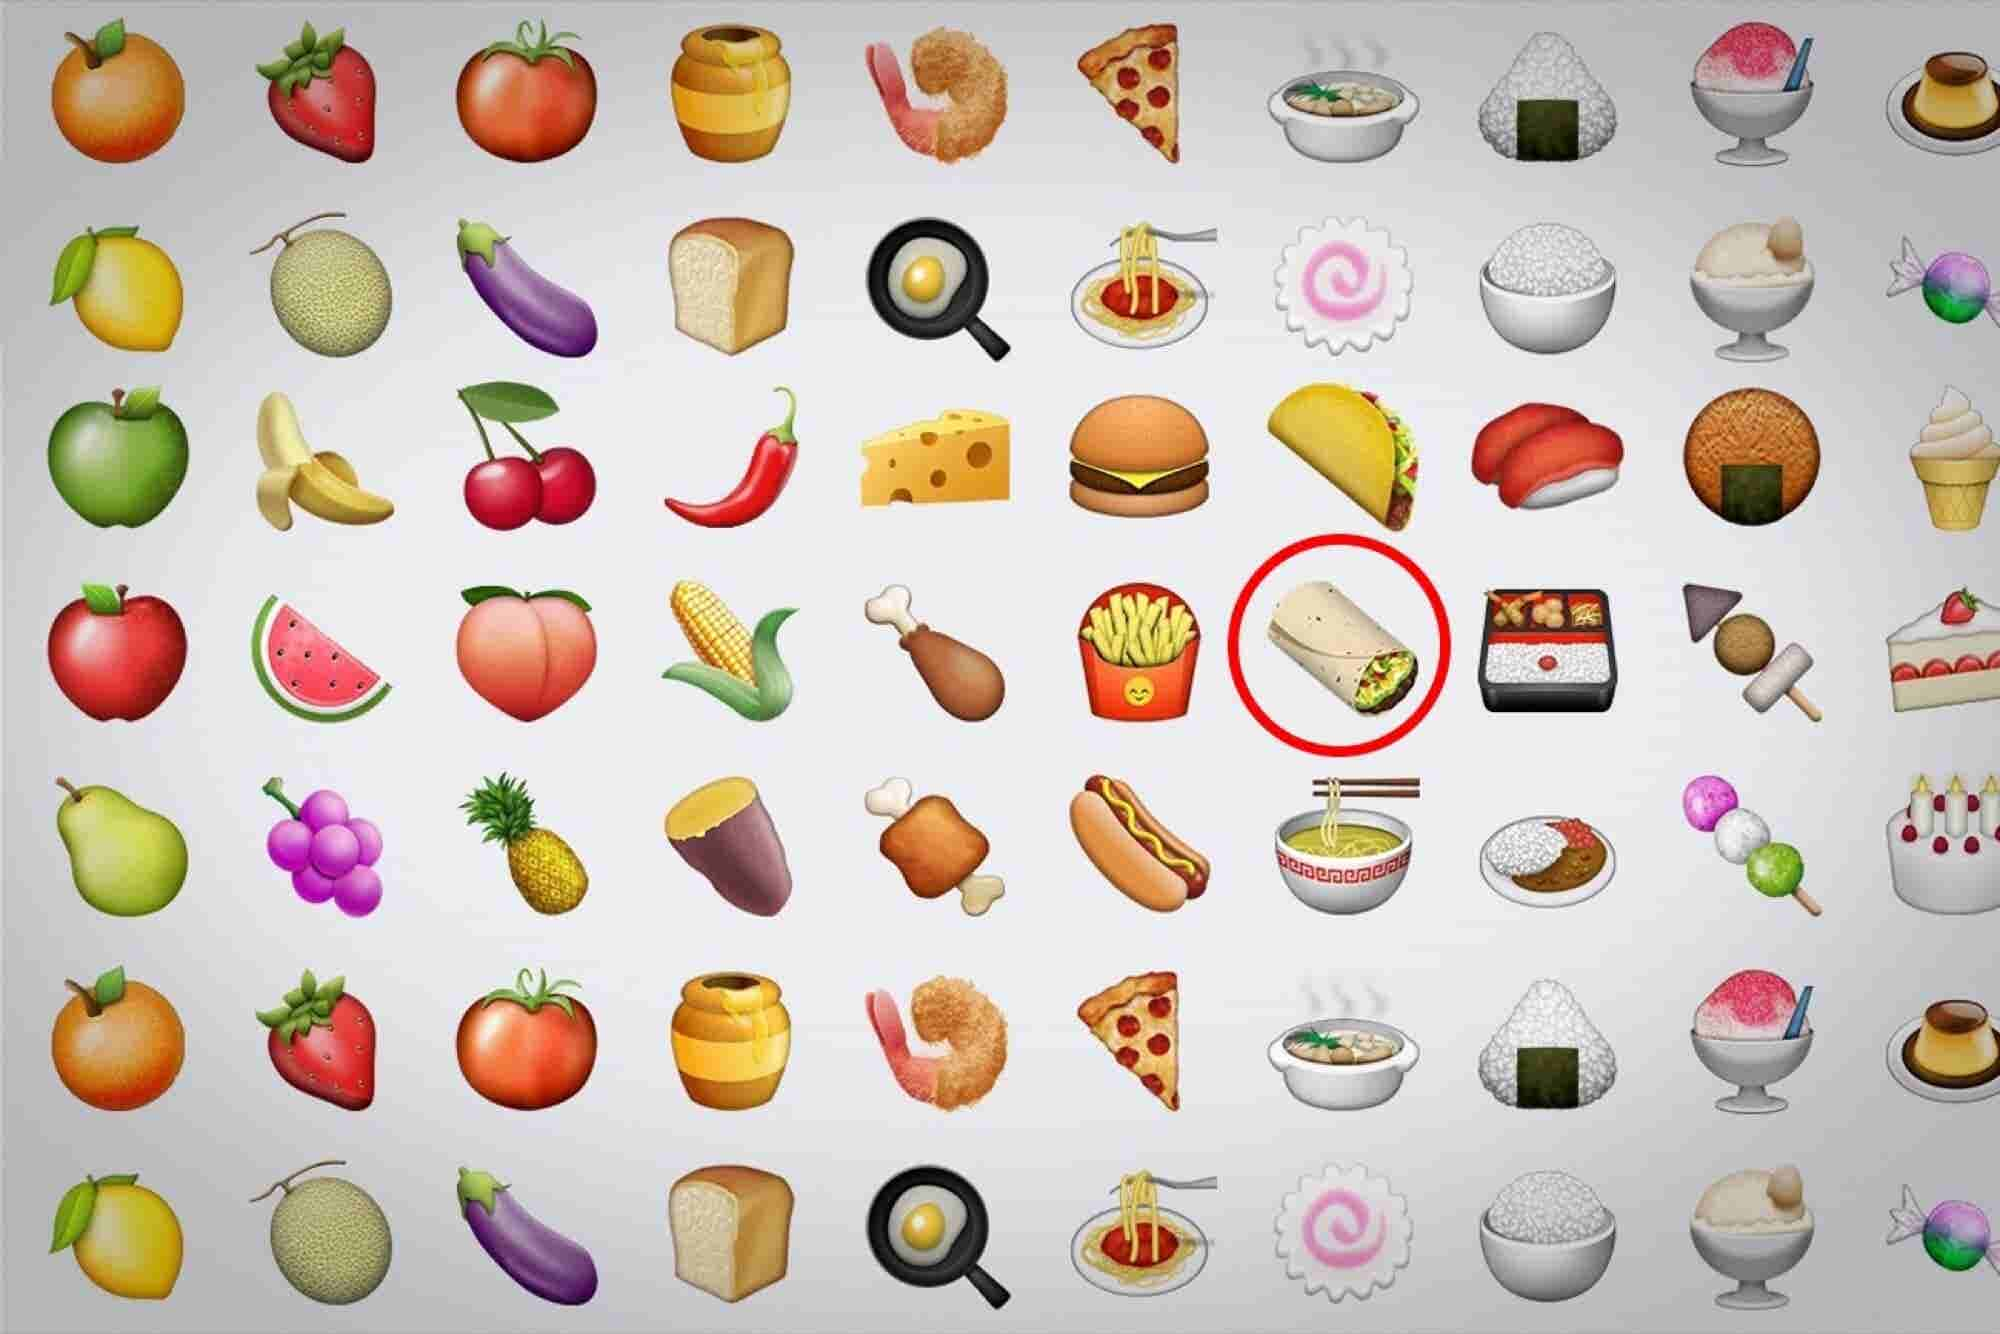 These Are the Crazy, Silly, Cute Emoji Coming to iOS 9.1